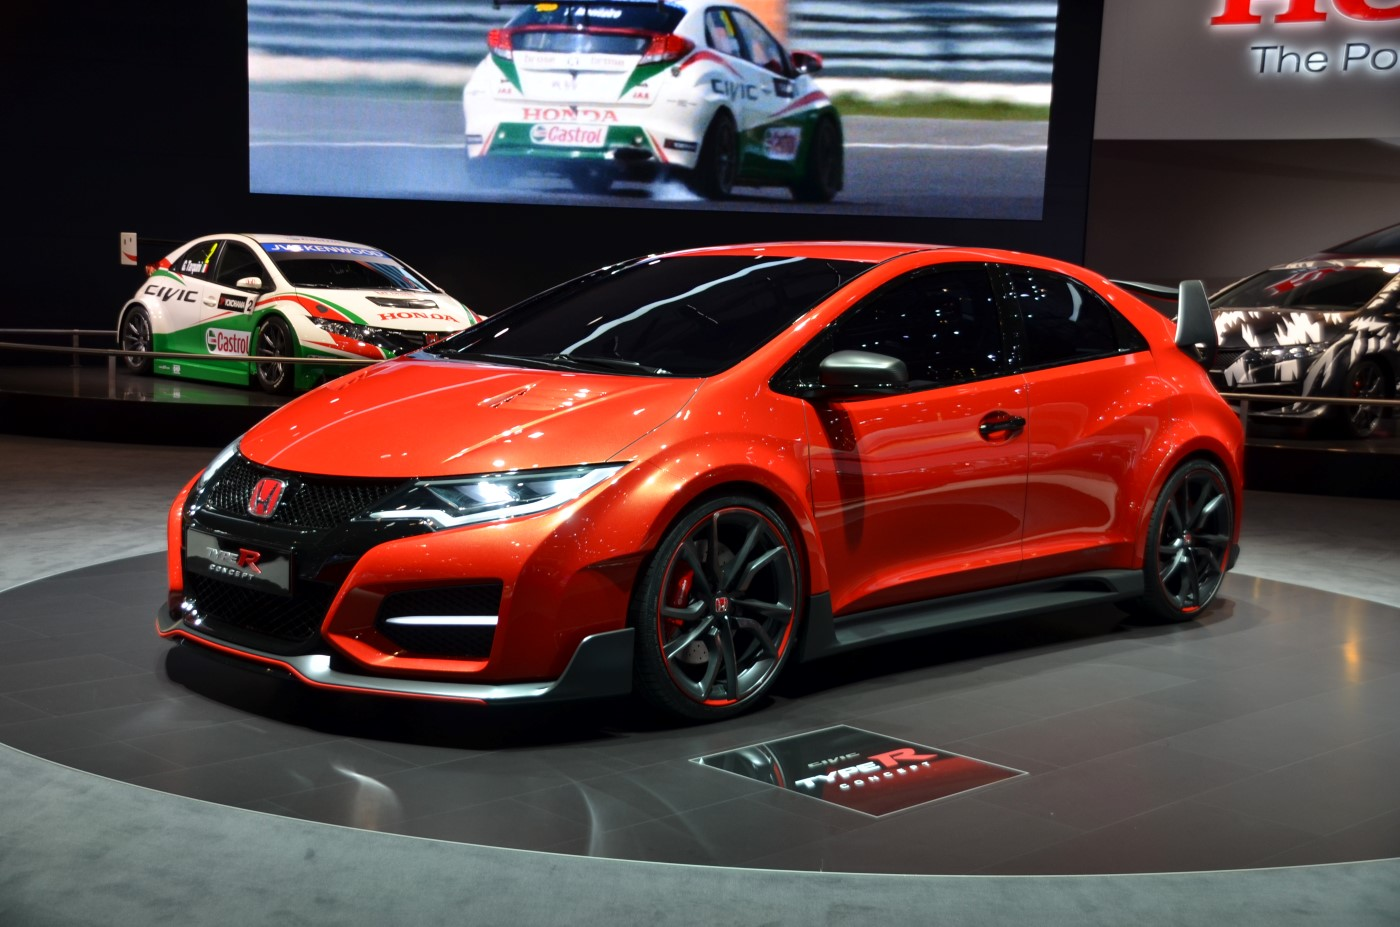 2014 Honda Civic Si Type R | www.galleryhip.com - The Hippest Pics